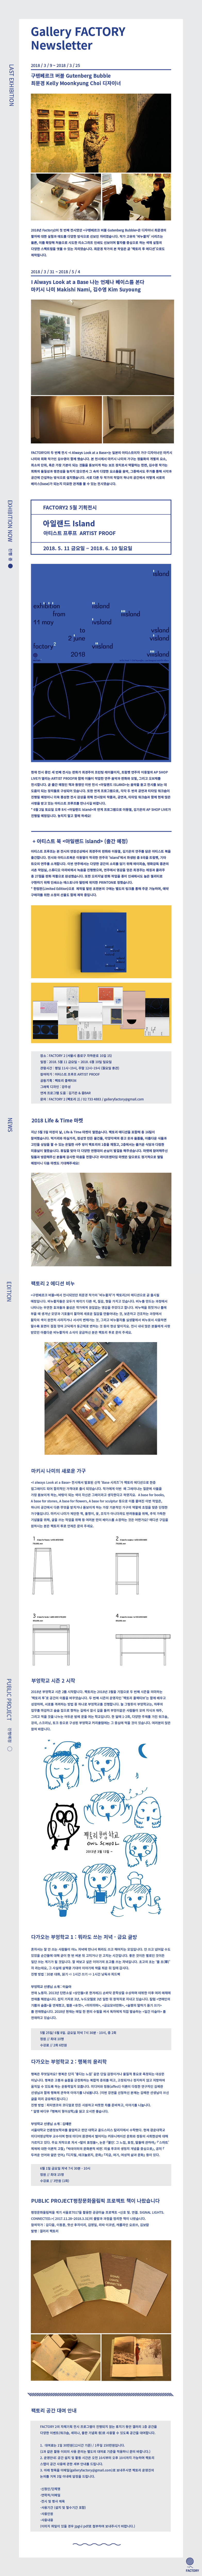 newsletter_180522.png